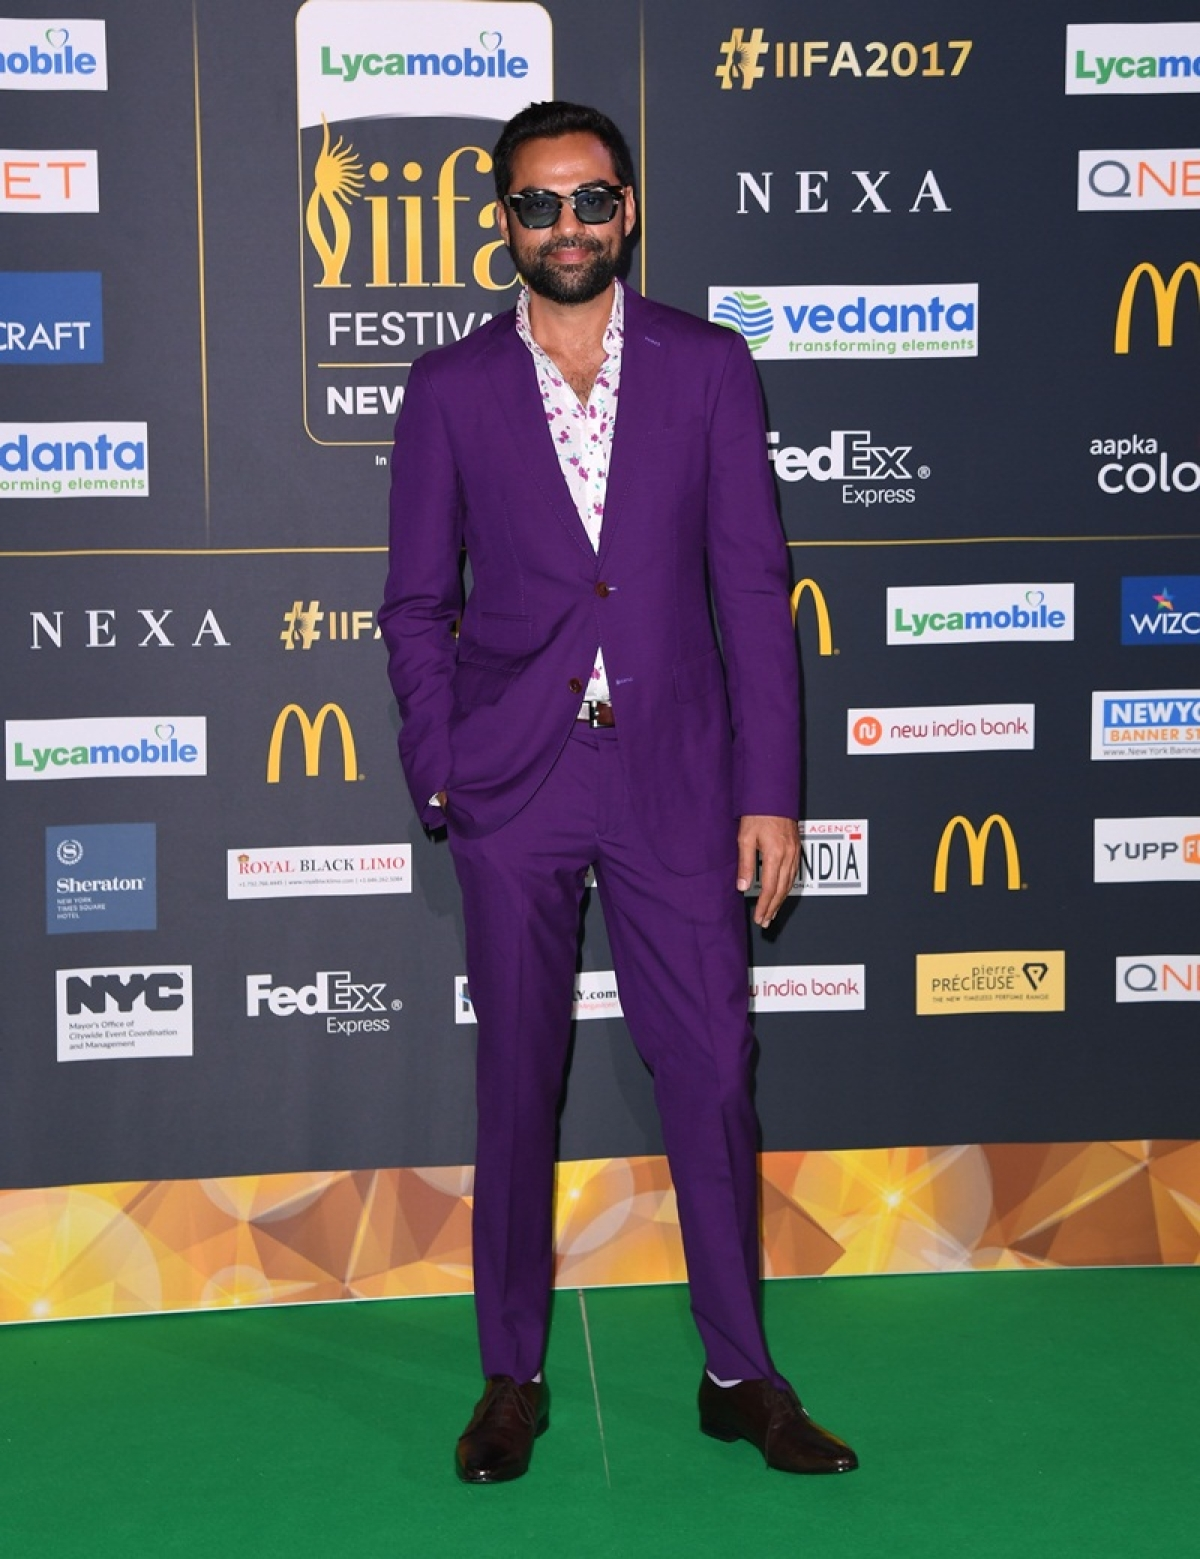 Bollywood actor Abhay Deol arrives for the IIFA Awards July 15, 2017 at the MetLife Stadium in East Rutherford, New Jersey during the 18th International Indian Film Academy (IIFA) Festival. / AFP PHOTO / ANGELA WEISS